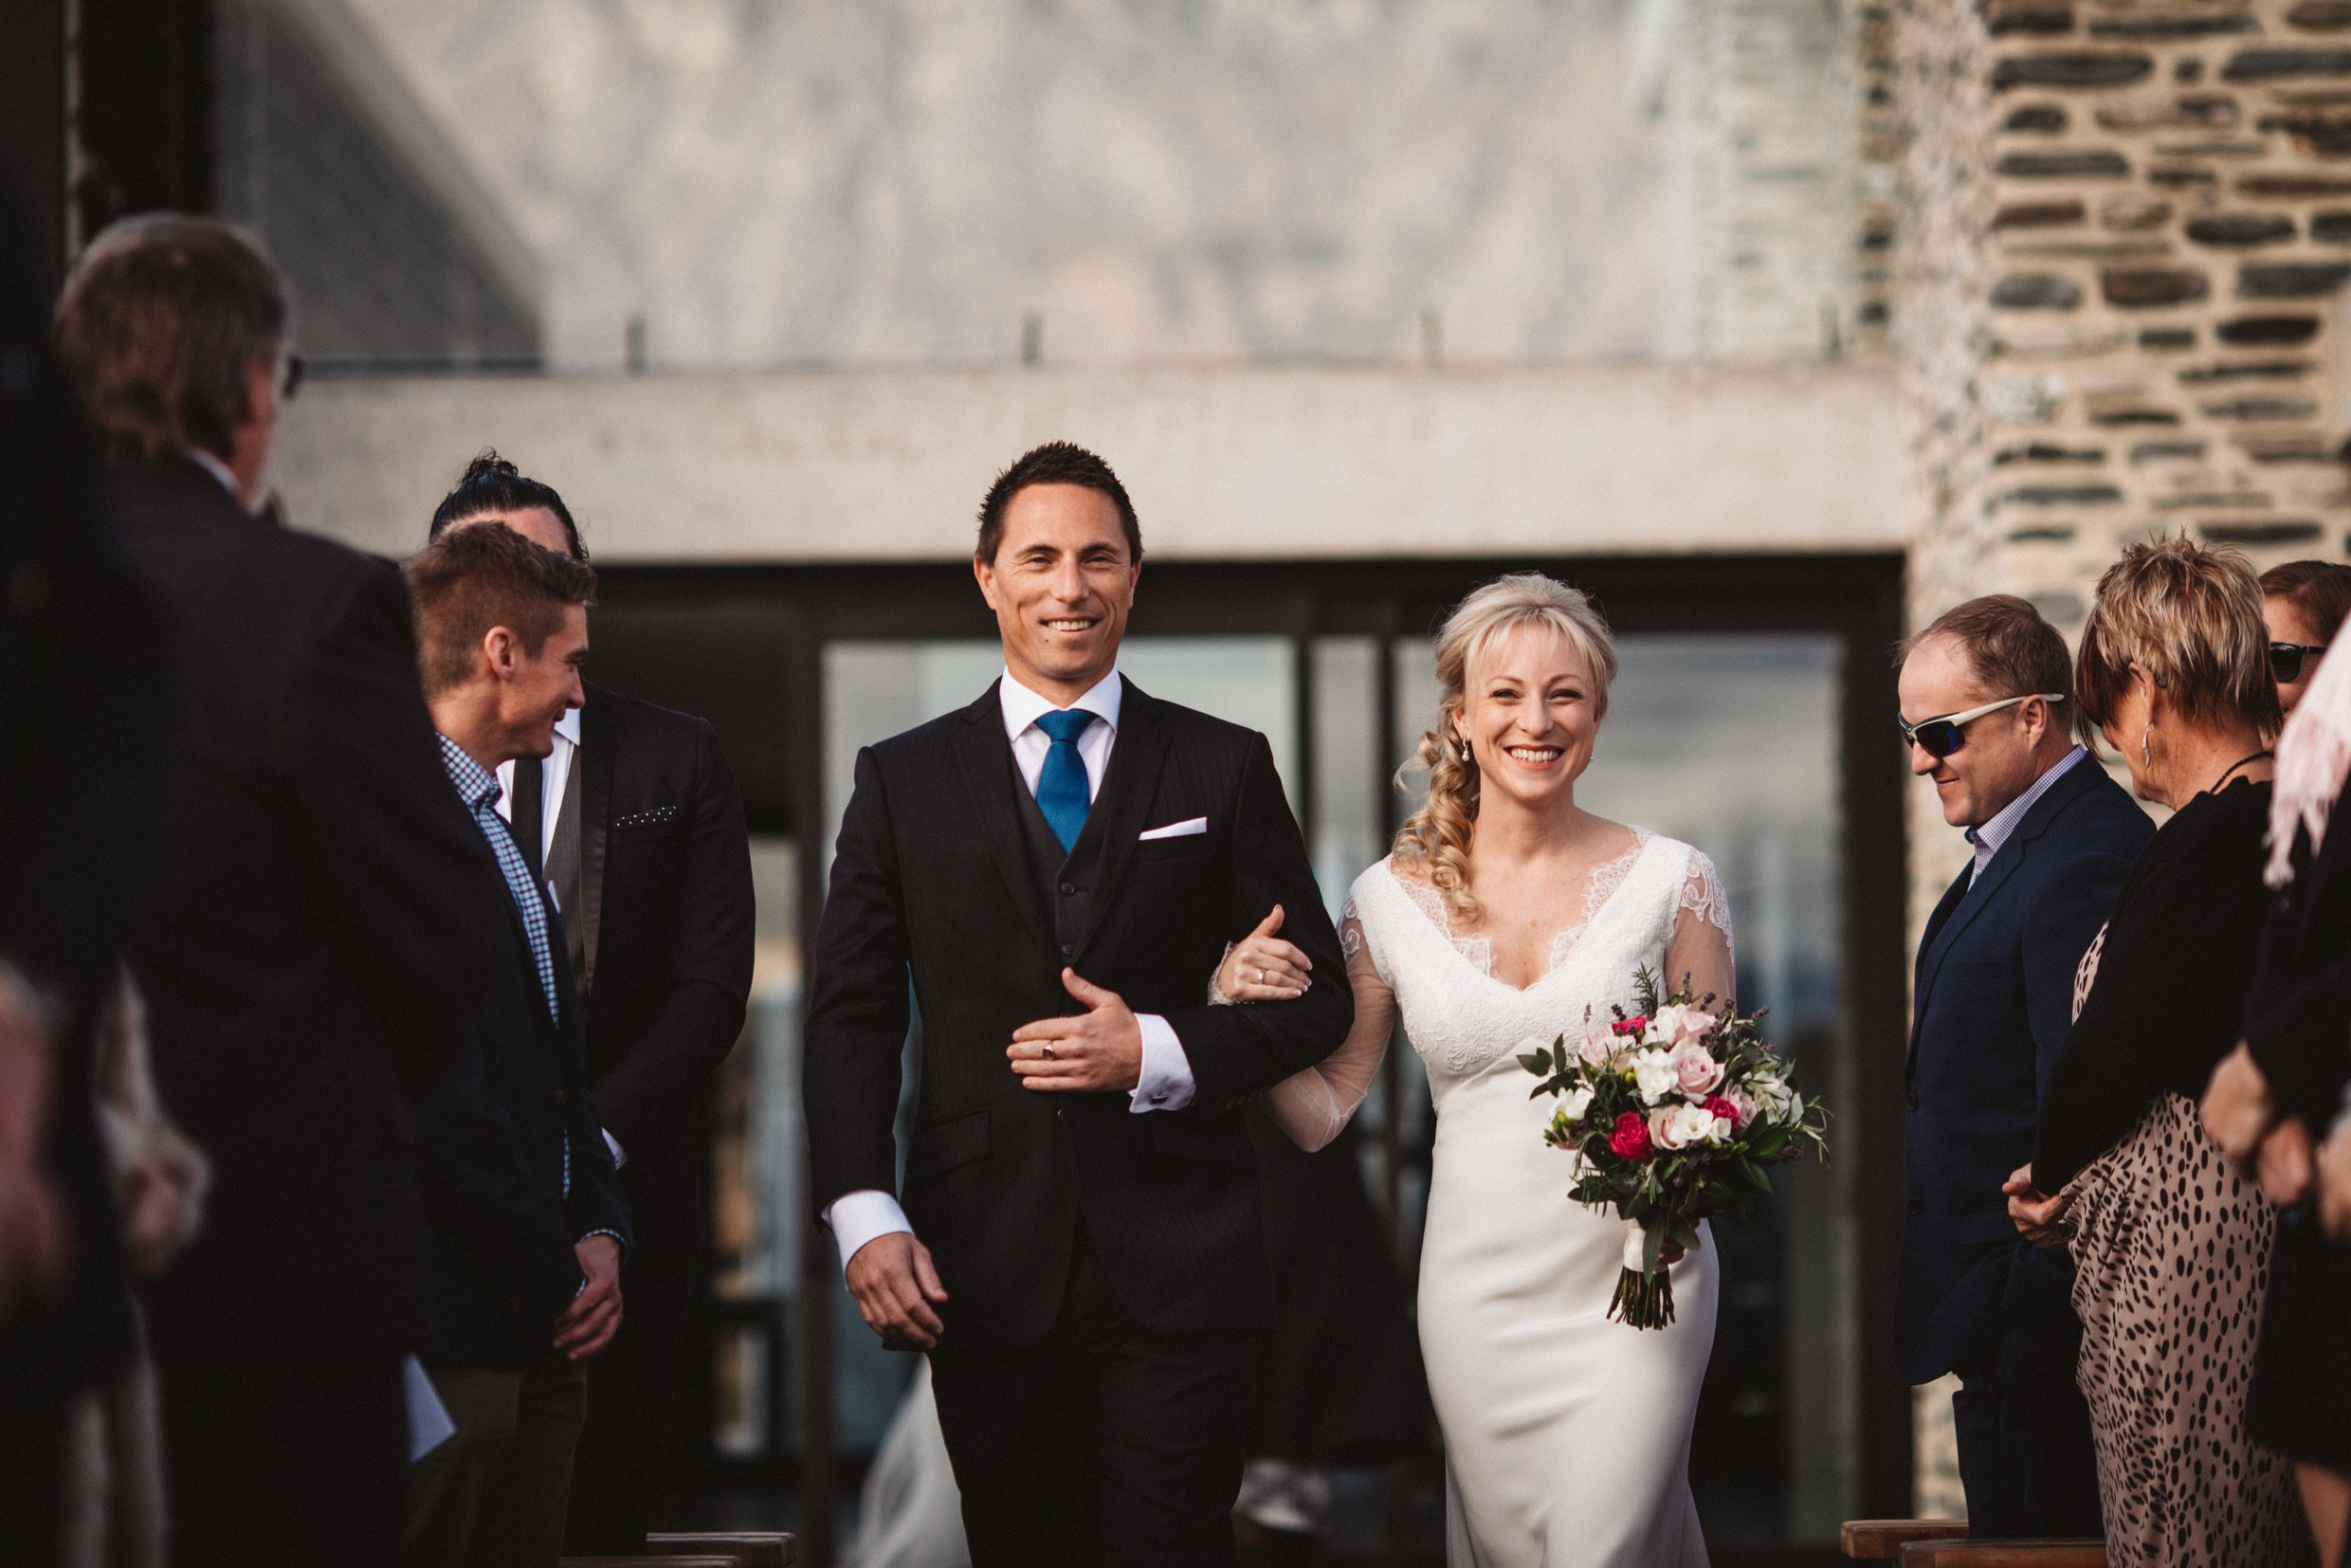 walking down the aisle in queenstown nz